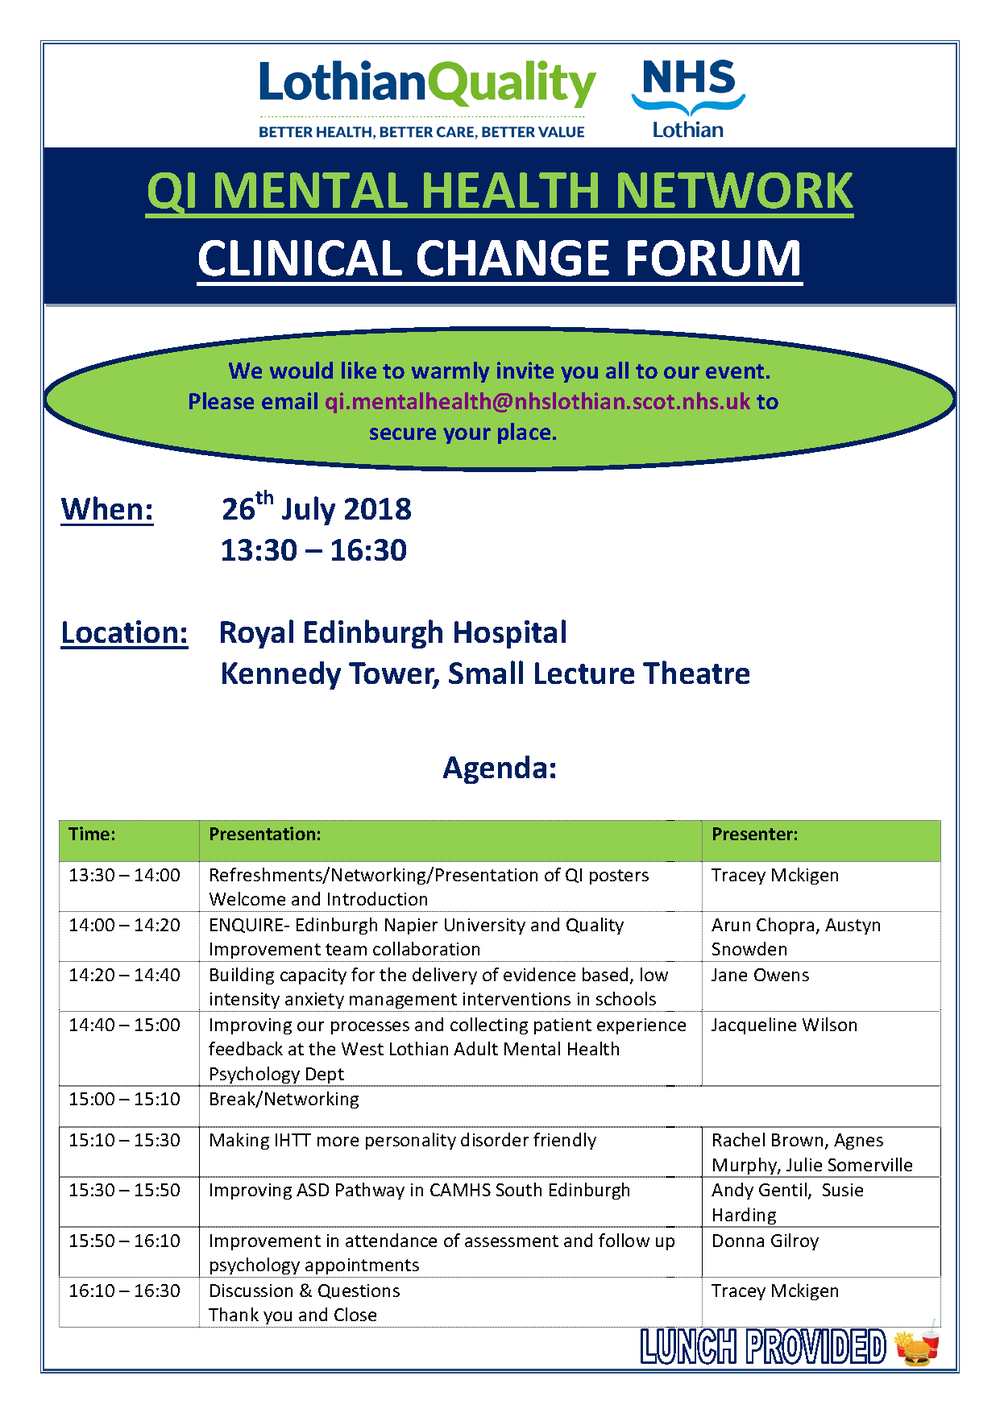 Clinical Change Forum Agenda_July 2018.png